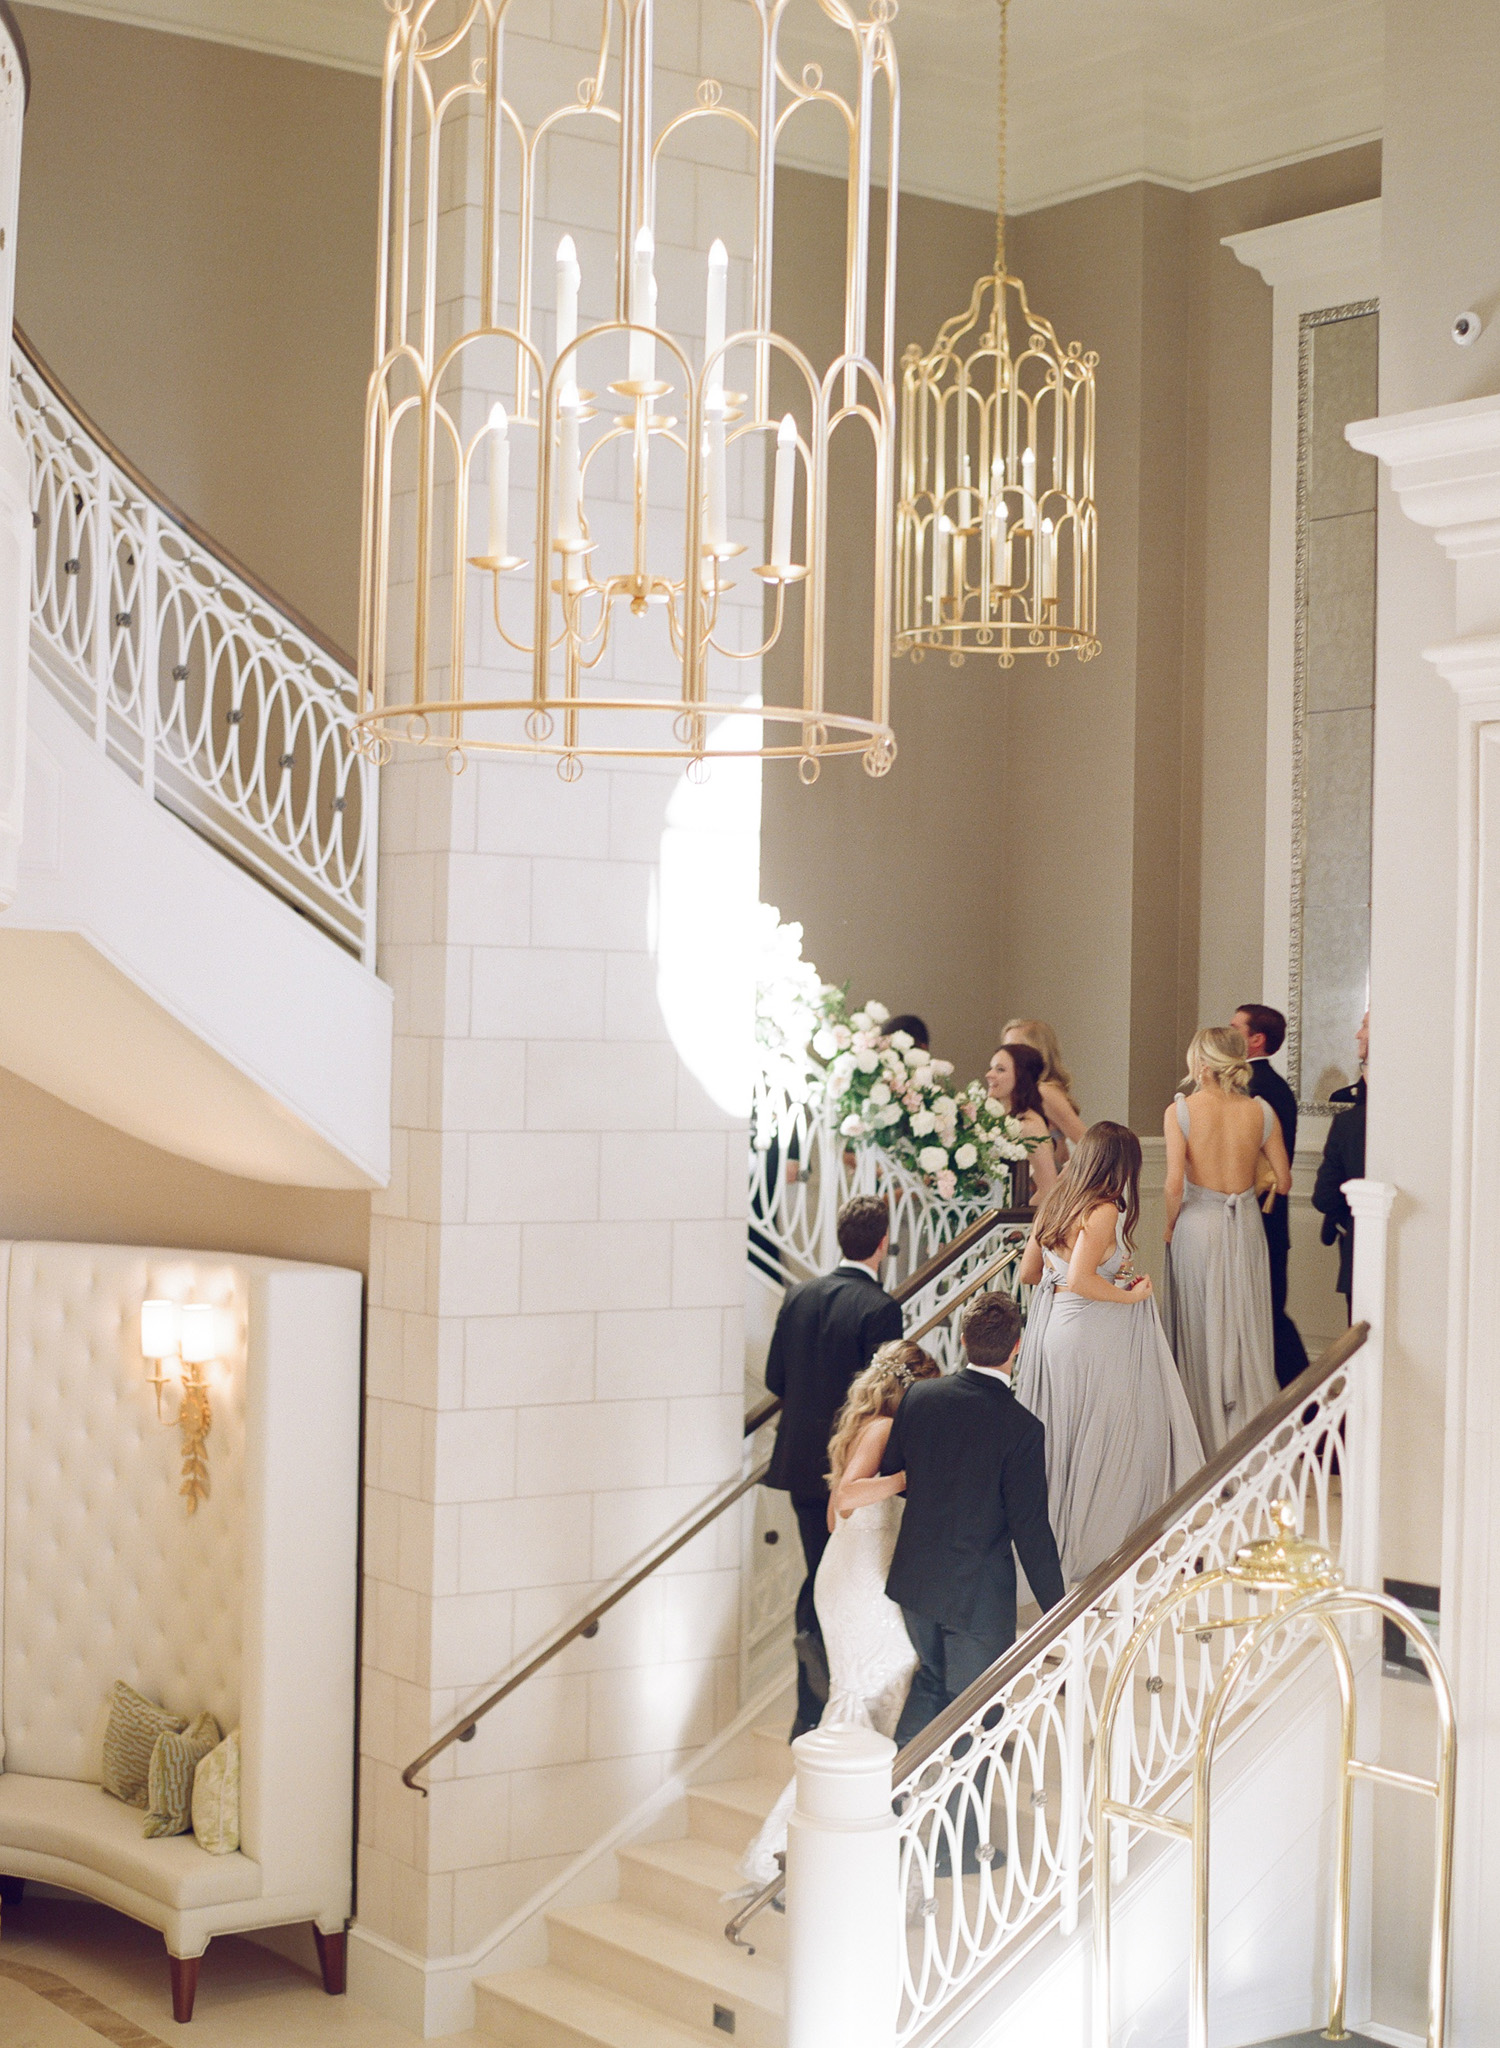 Charleston-Wedding-Hotel-Bennett-110.jpg